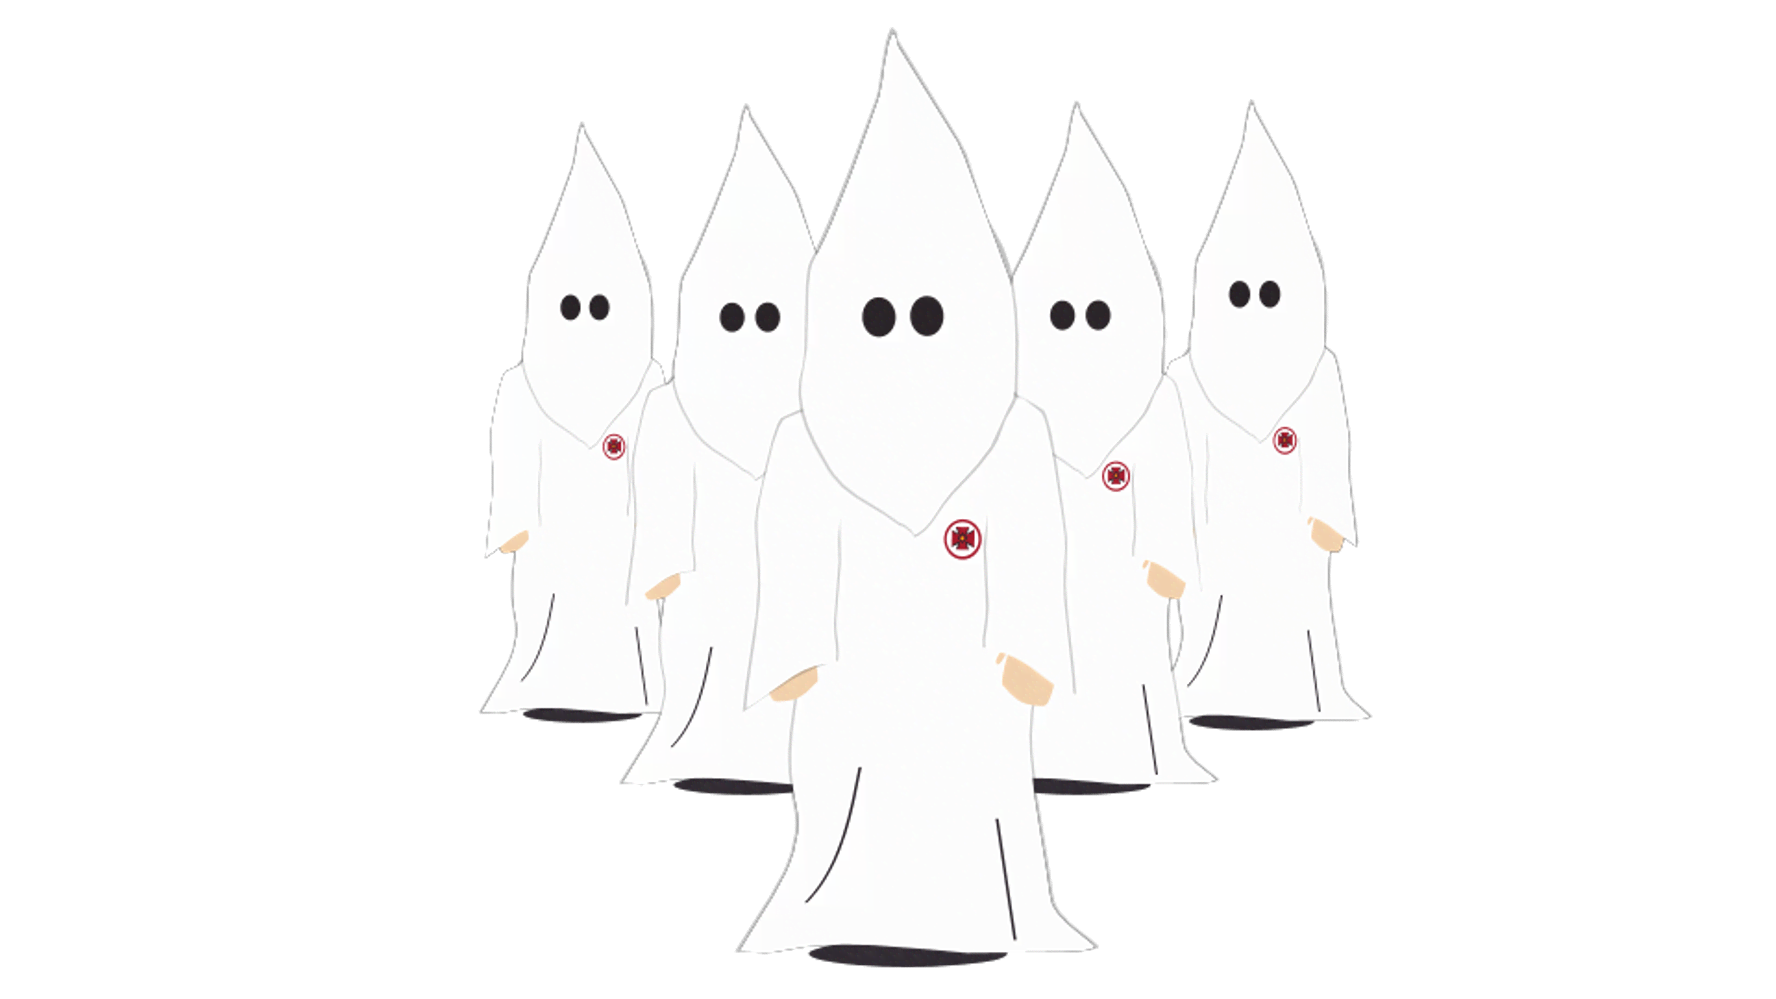 Kkk mask png. Ku klux klan south